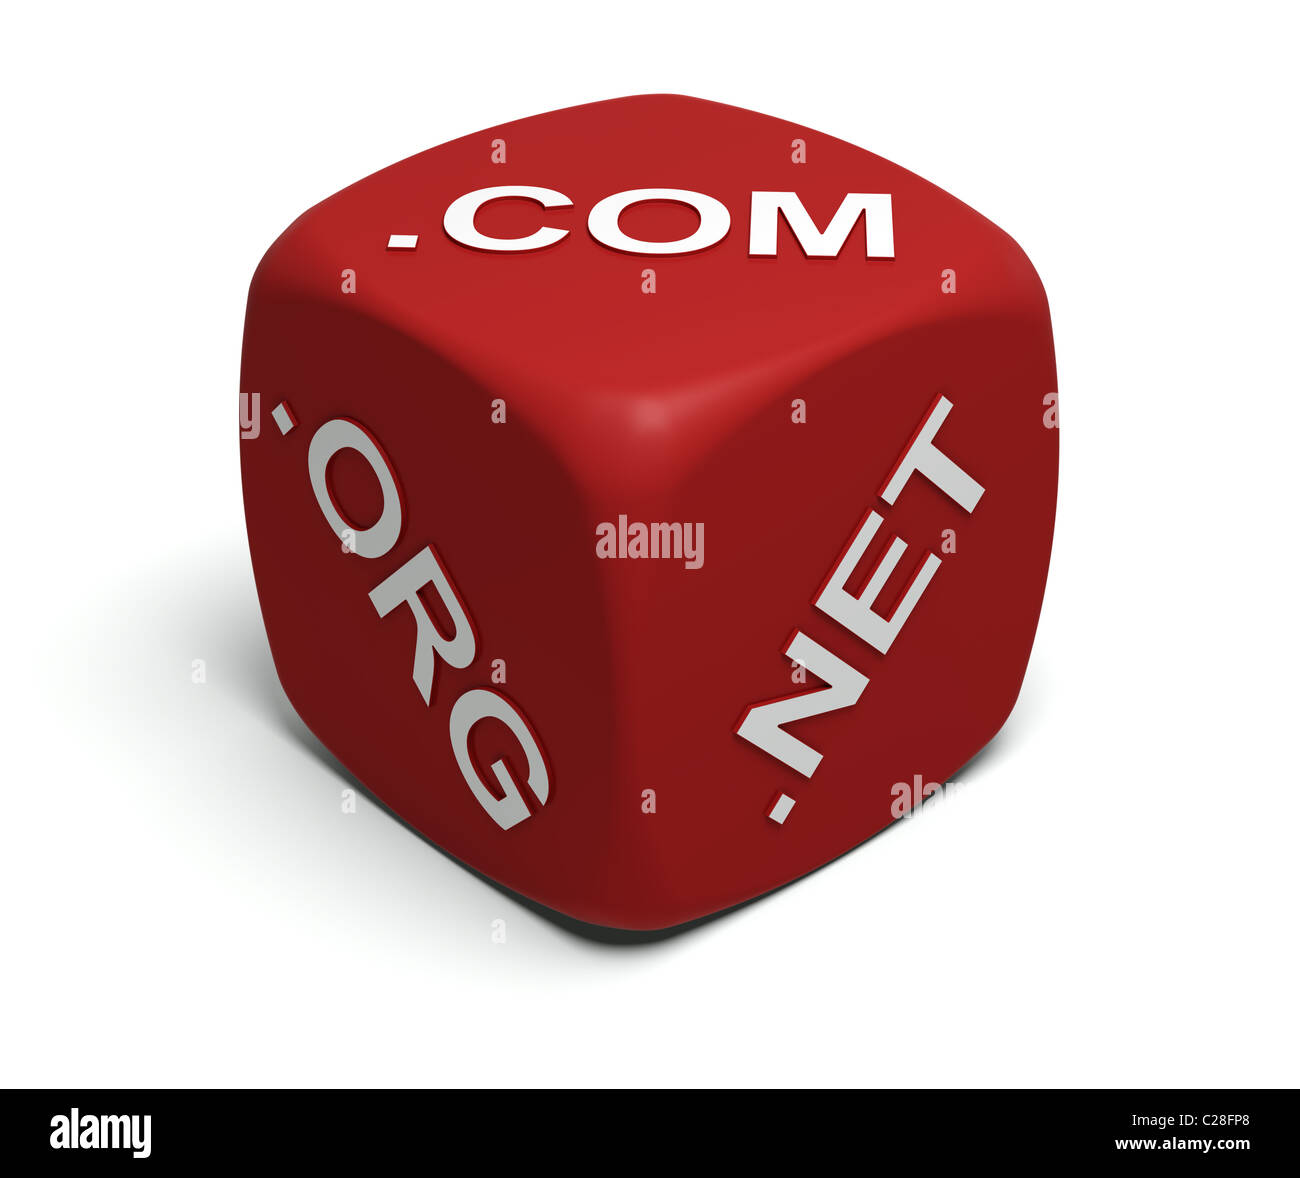 Red Dice with Internet domain names on faces - Stock Image